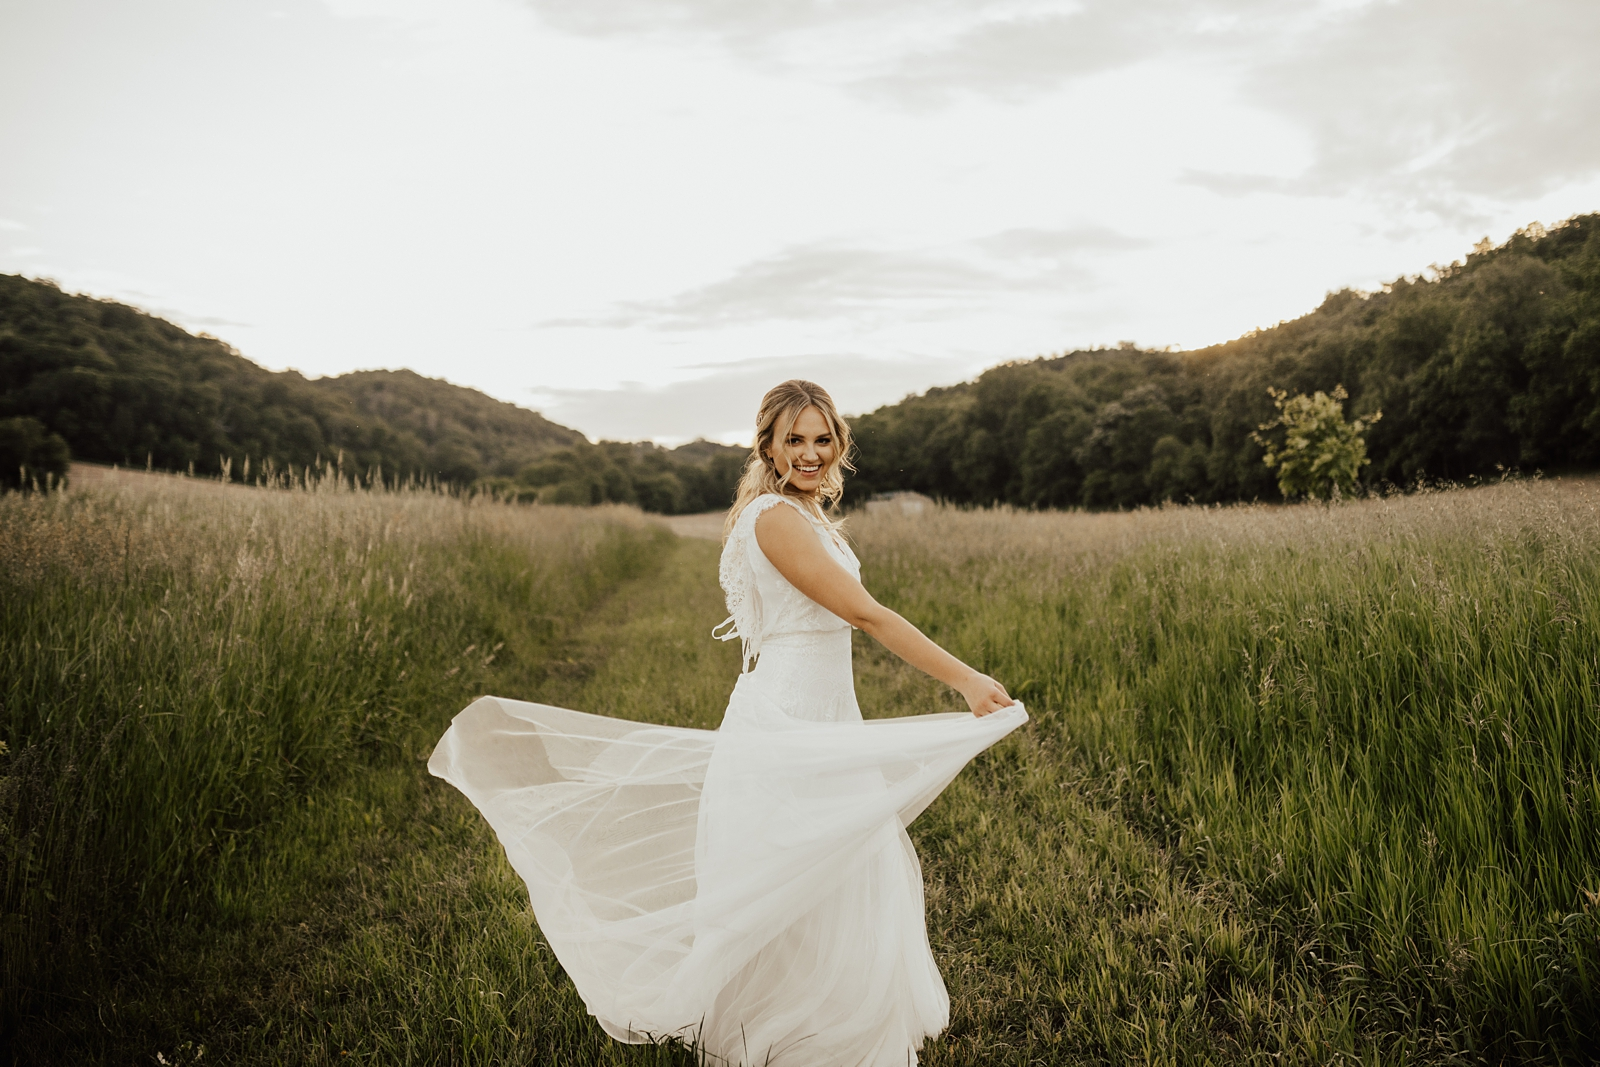 Vanessa & Michael Boho Chic Hidden Meadow & Barn Wedding in Pepin, WI_0604.jpg